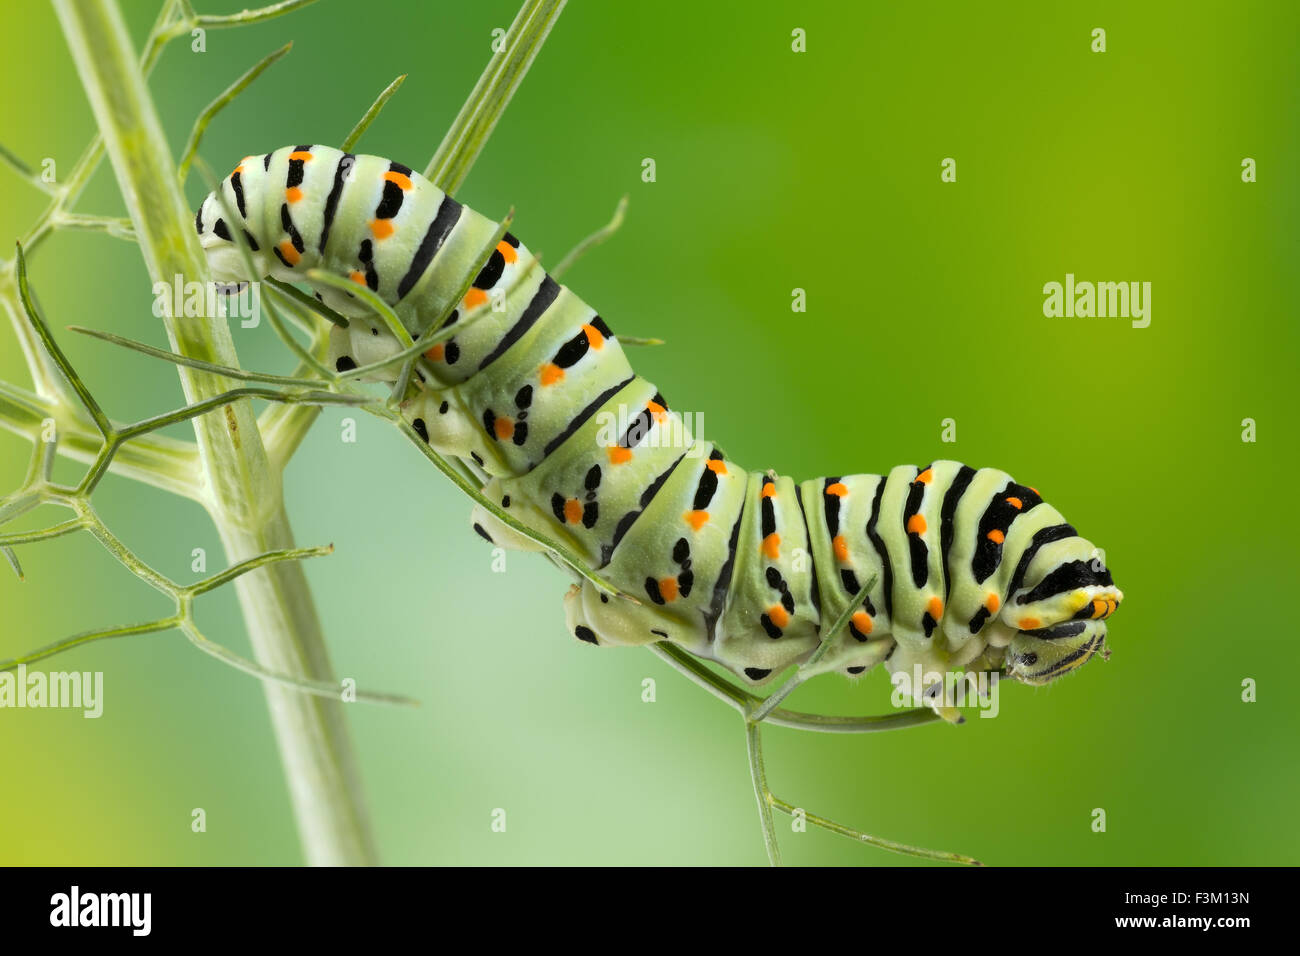 Caterpillar of the Maltese Swallowtail Butterfly eating fennel leaves, 10 days after hatching, about 40 mm long. - Stock Image